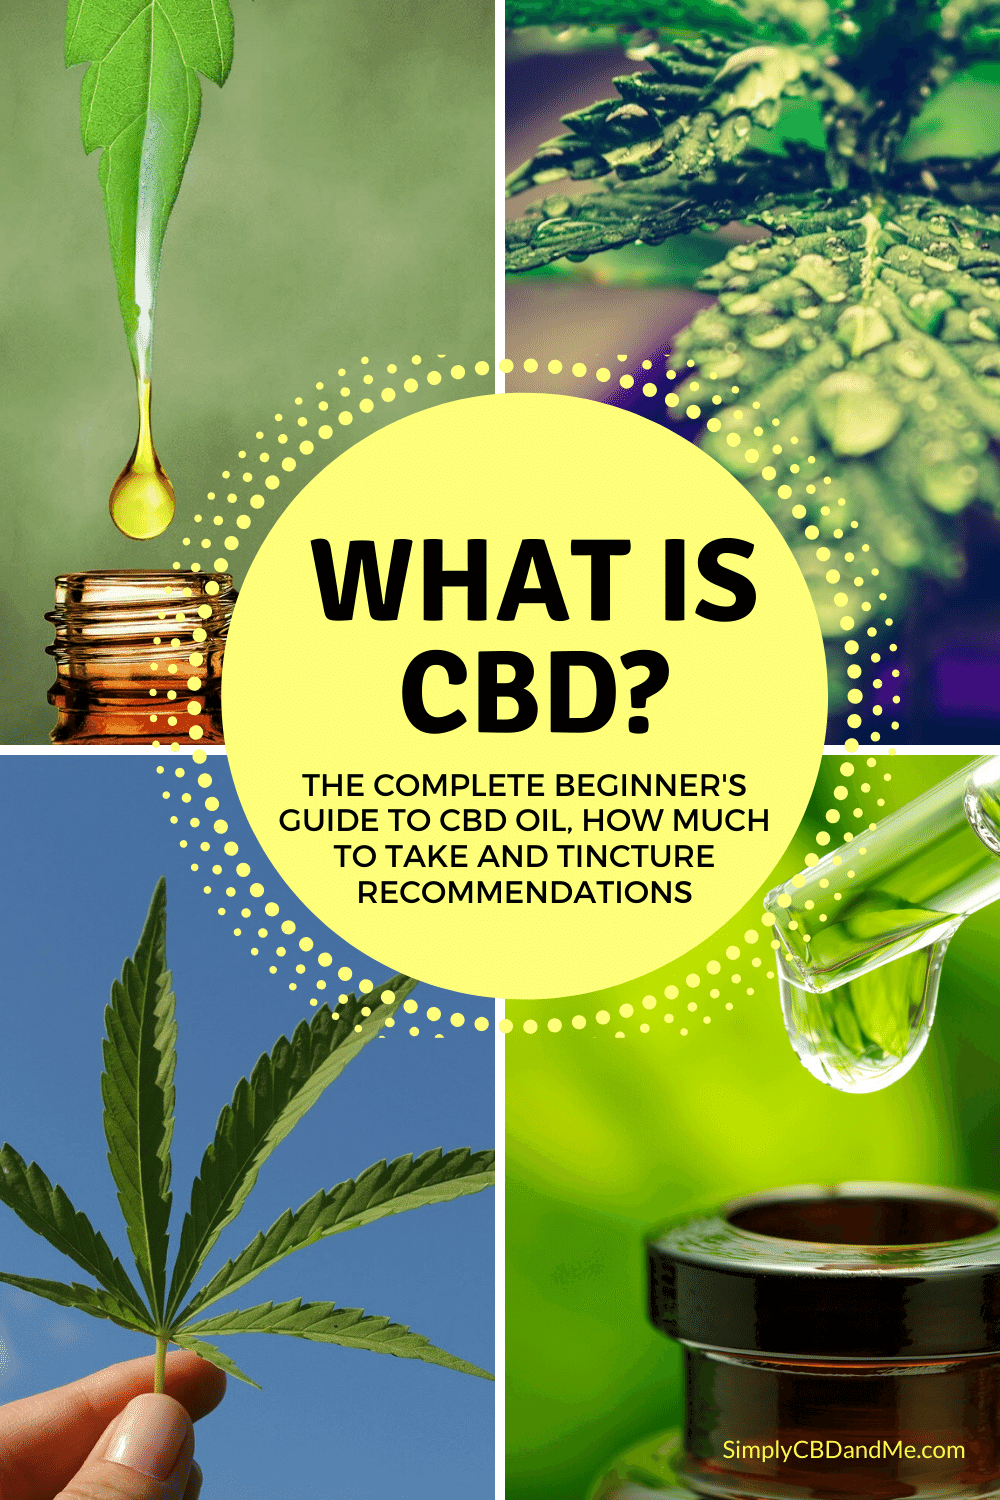 What is CBD? A complete beginner's guide to CBD oil, how much to take and tincture recommendations!